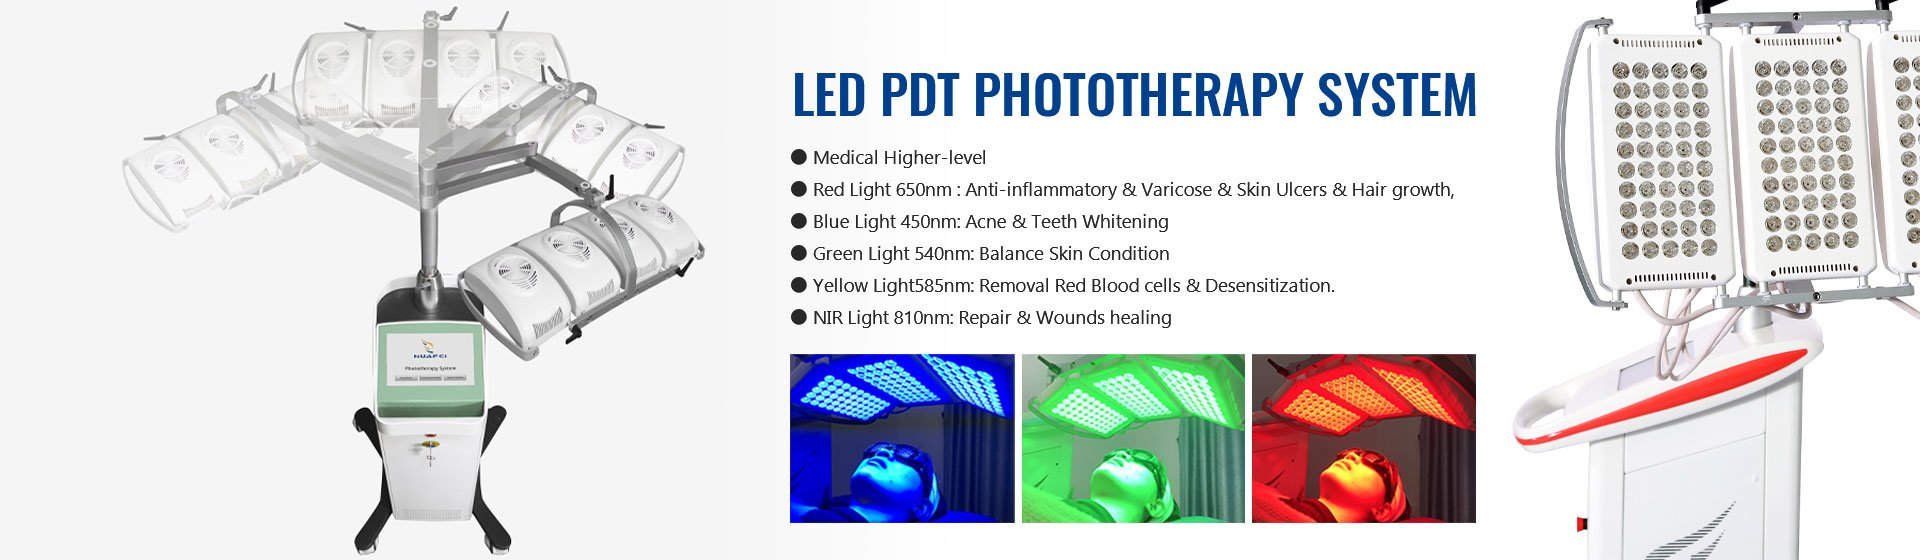 Banner-01-LED-PDT-PHOTOTHERAPY-SYSTEM